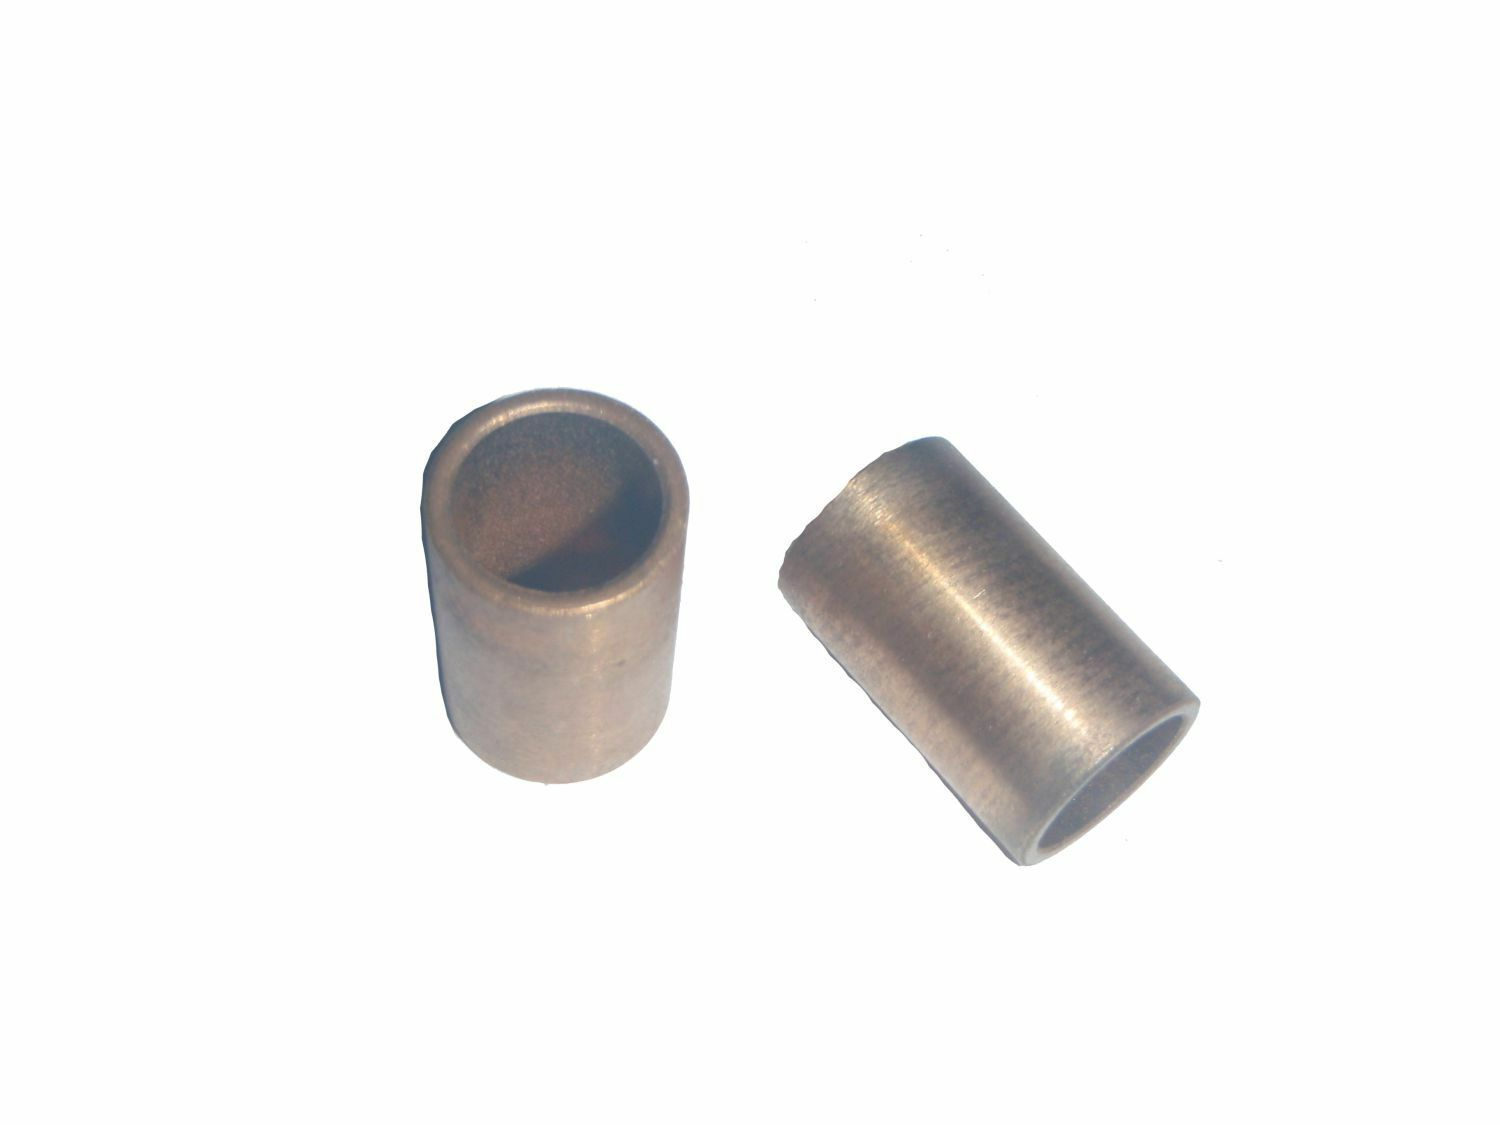 2 NEW Ignition Distributor Bushings 1936-1952 INDIAN Motorcycle